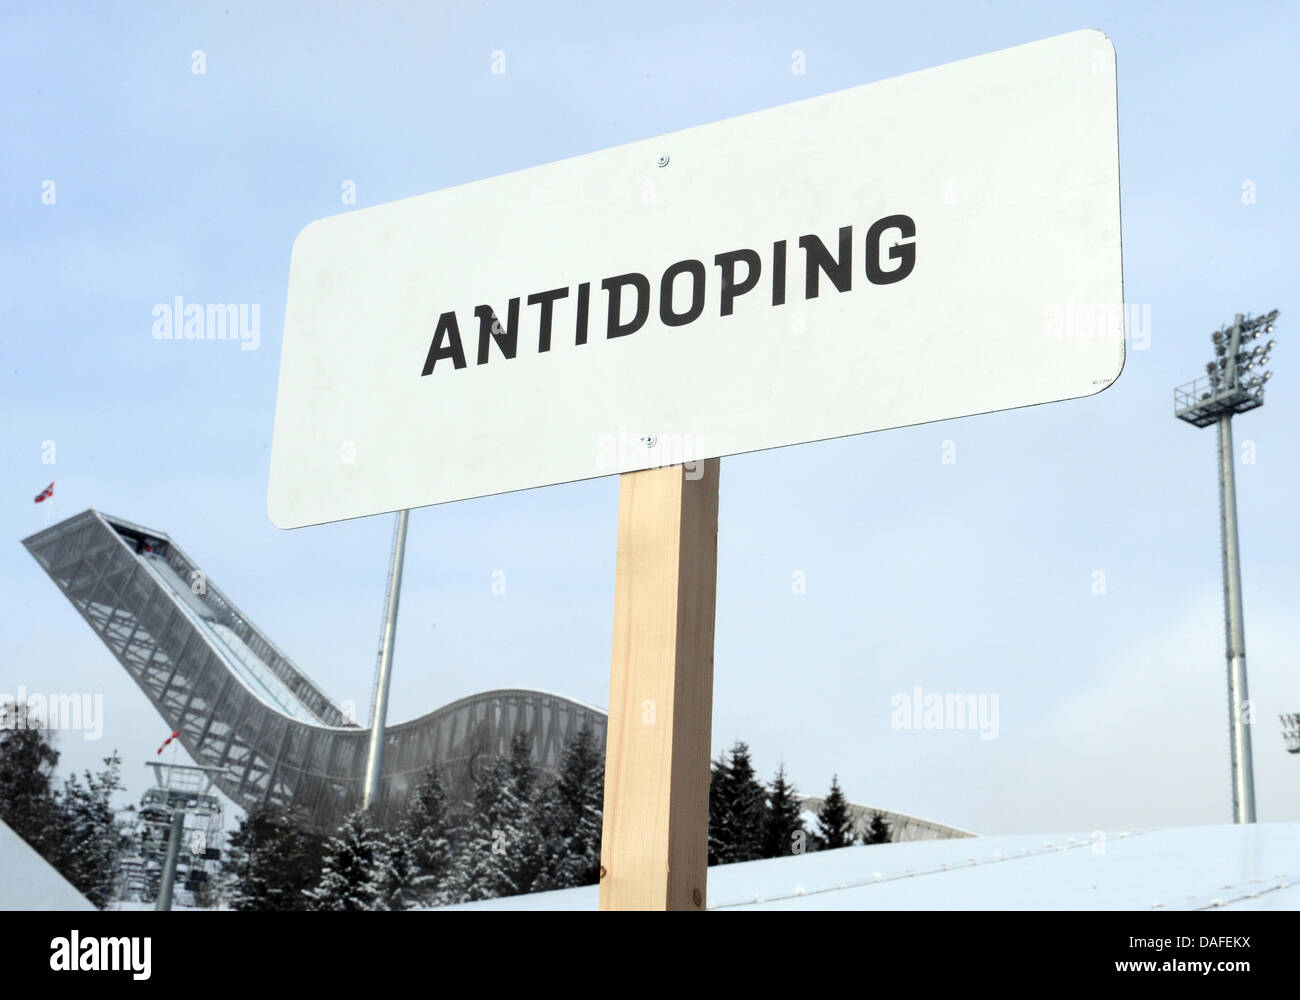 An anti-doping sign is seen at the Nordic Skiing World Championships in Oslo, Norway, 23 February 2011. The International - Stock Image